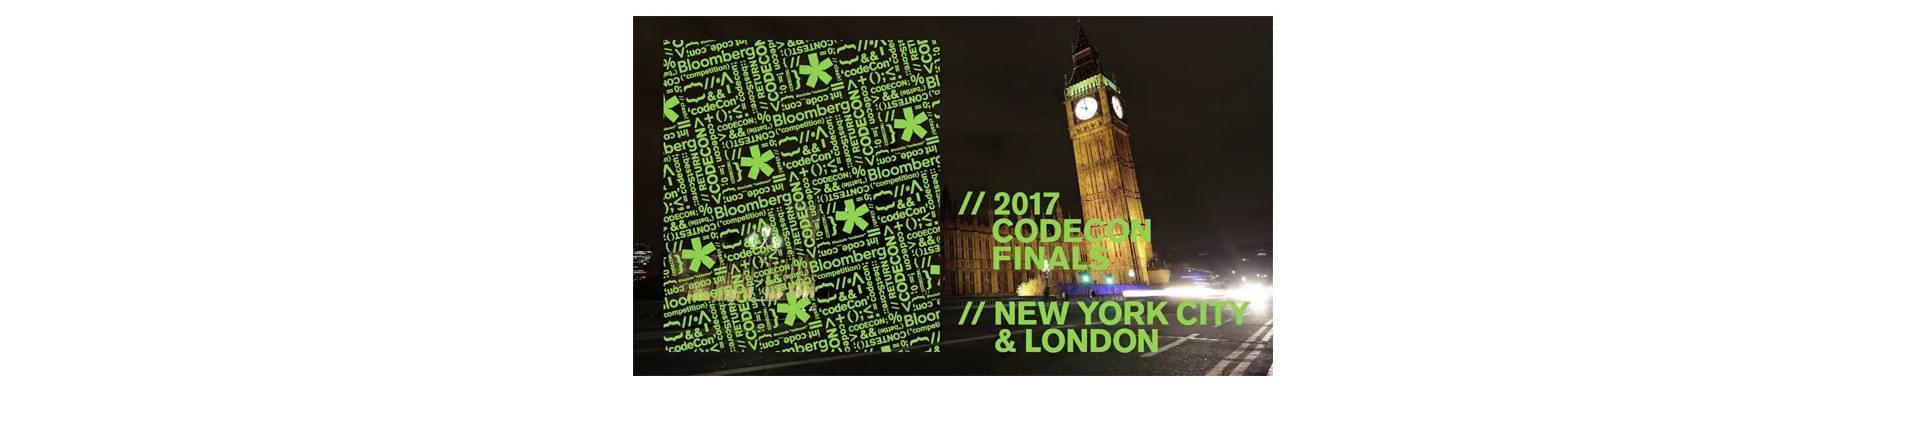 the Big Ben in London with the text '2017 CodeCon Finals - New York City and London' over the top of the image